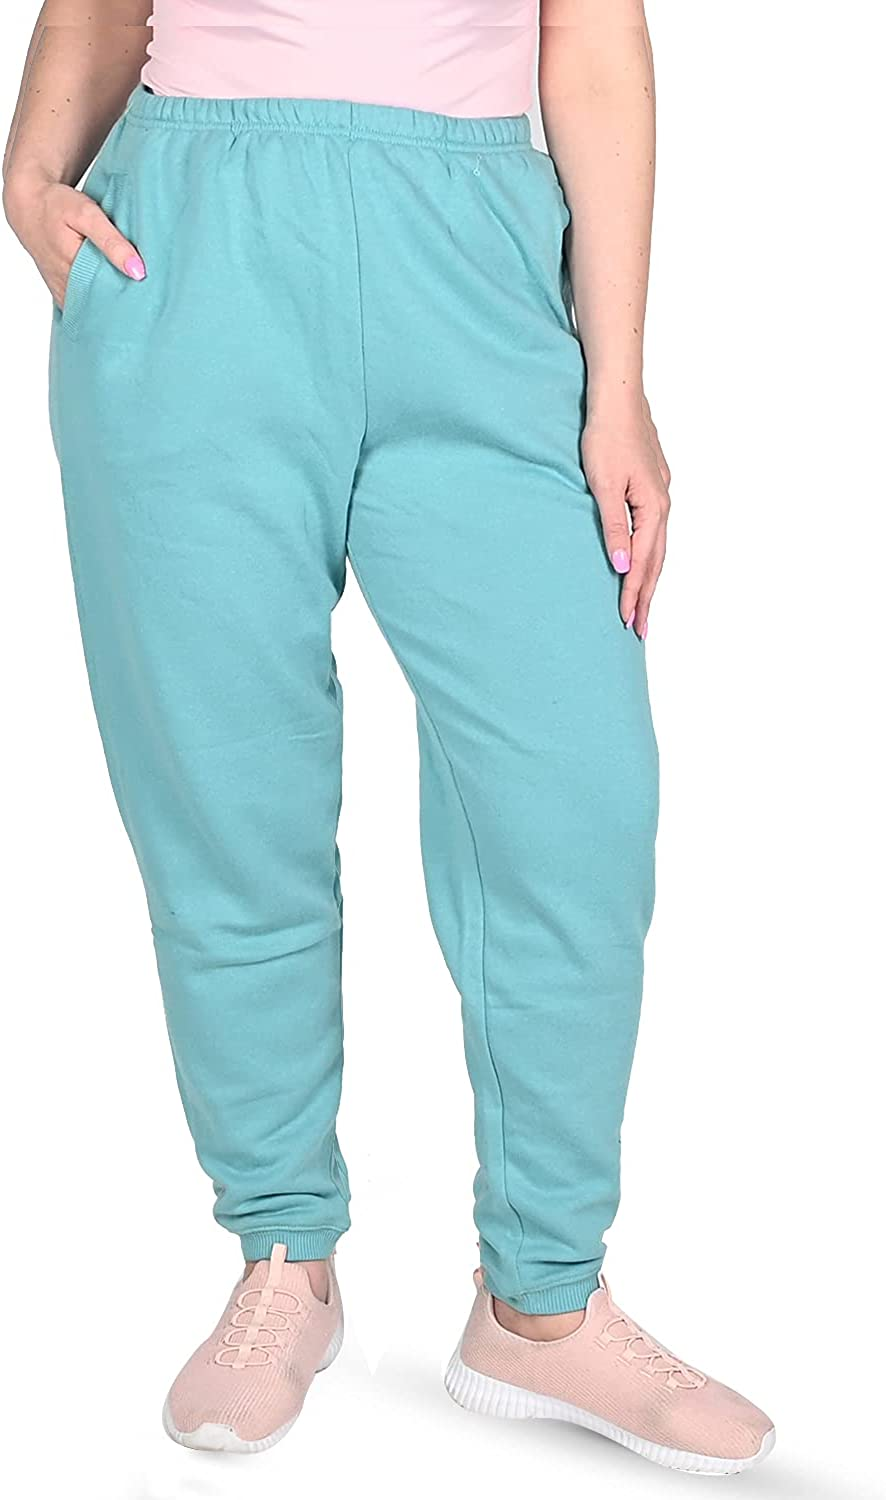 Shop LC Jovie Seafoam Fleece Polyester Cotton All stores are sold Elasti Max 71% OFF Pant